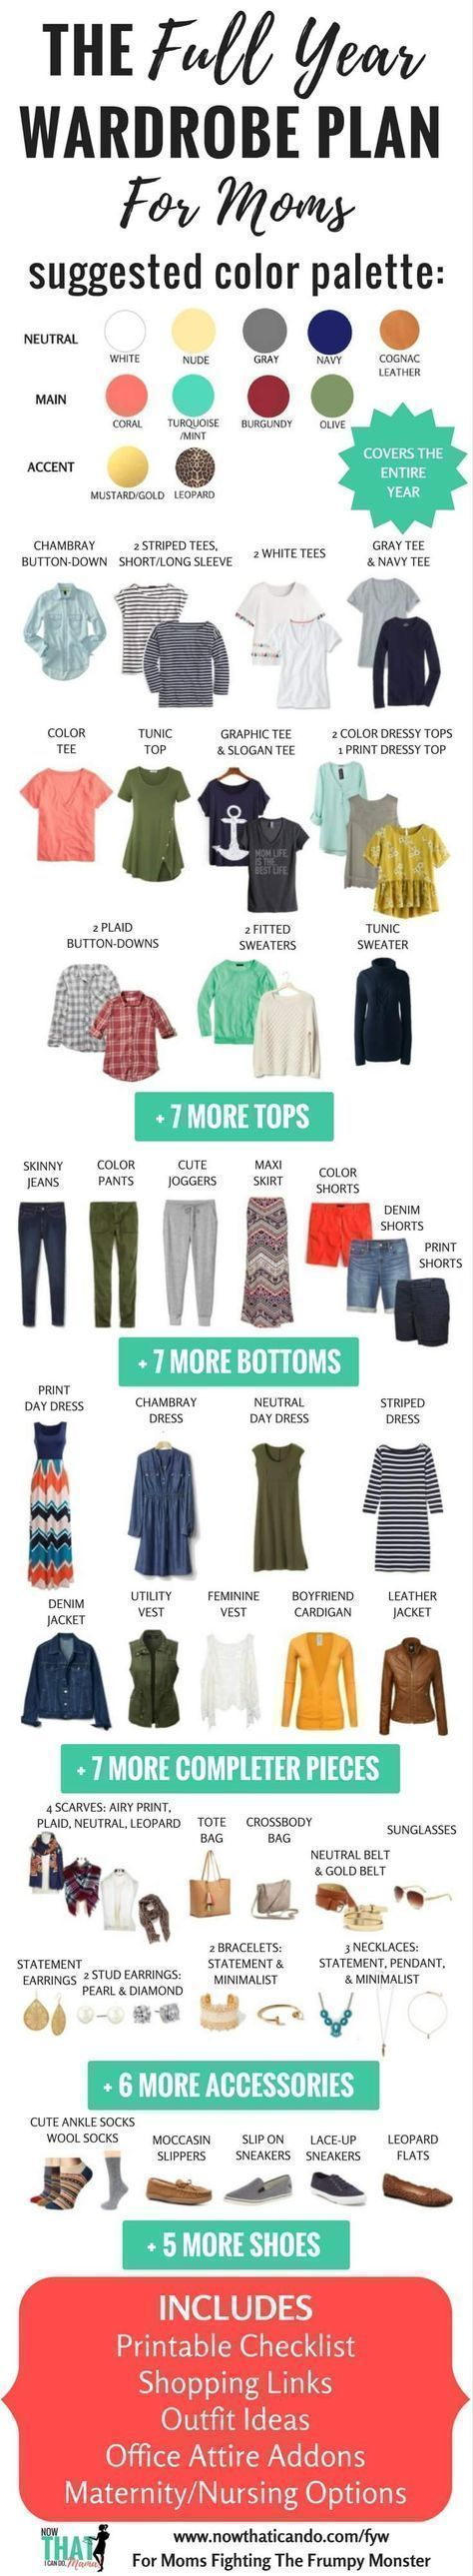 Stay at home mom's full year fall/winter/spring/summer capsule wardrobe plan for what clothes to have. Perfect for young moms under 30 & in their 30's and 40's. Pieces are casual & comfortable but also cute & chic for easy outfits on the go. LOVE! She has a free ebook with a printable planner shopping checklist & tons of links to cheap, affordable pieces (including nursing, maternity & plus size options)!! Plus casual mommy style outfits ideas! Great too for stylish work at home mom or…